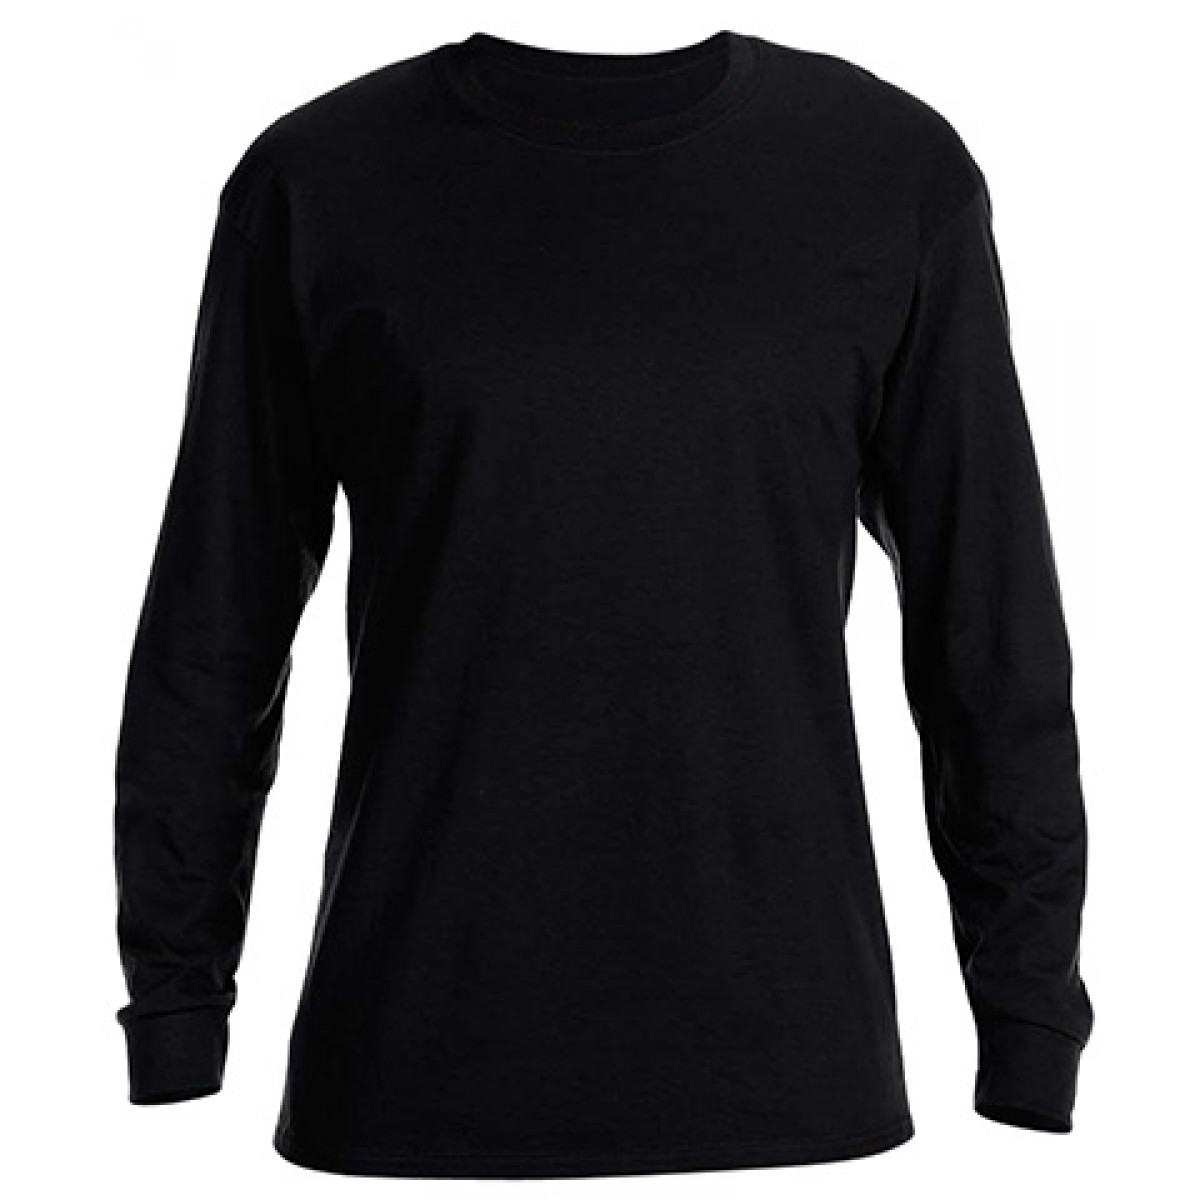 Basic Long Sleeve Crew Neck -Black-XL